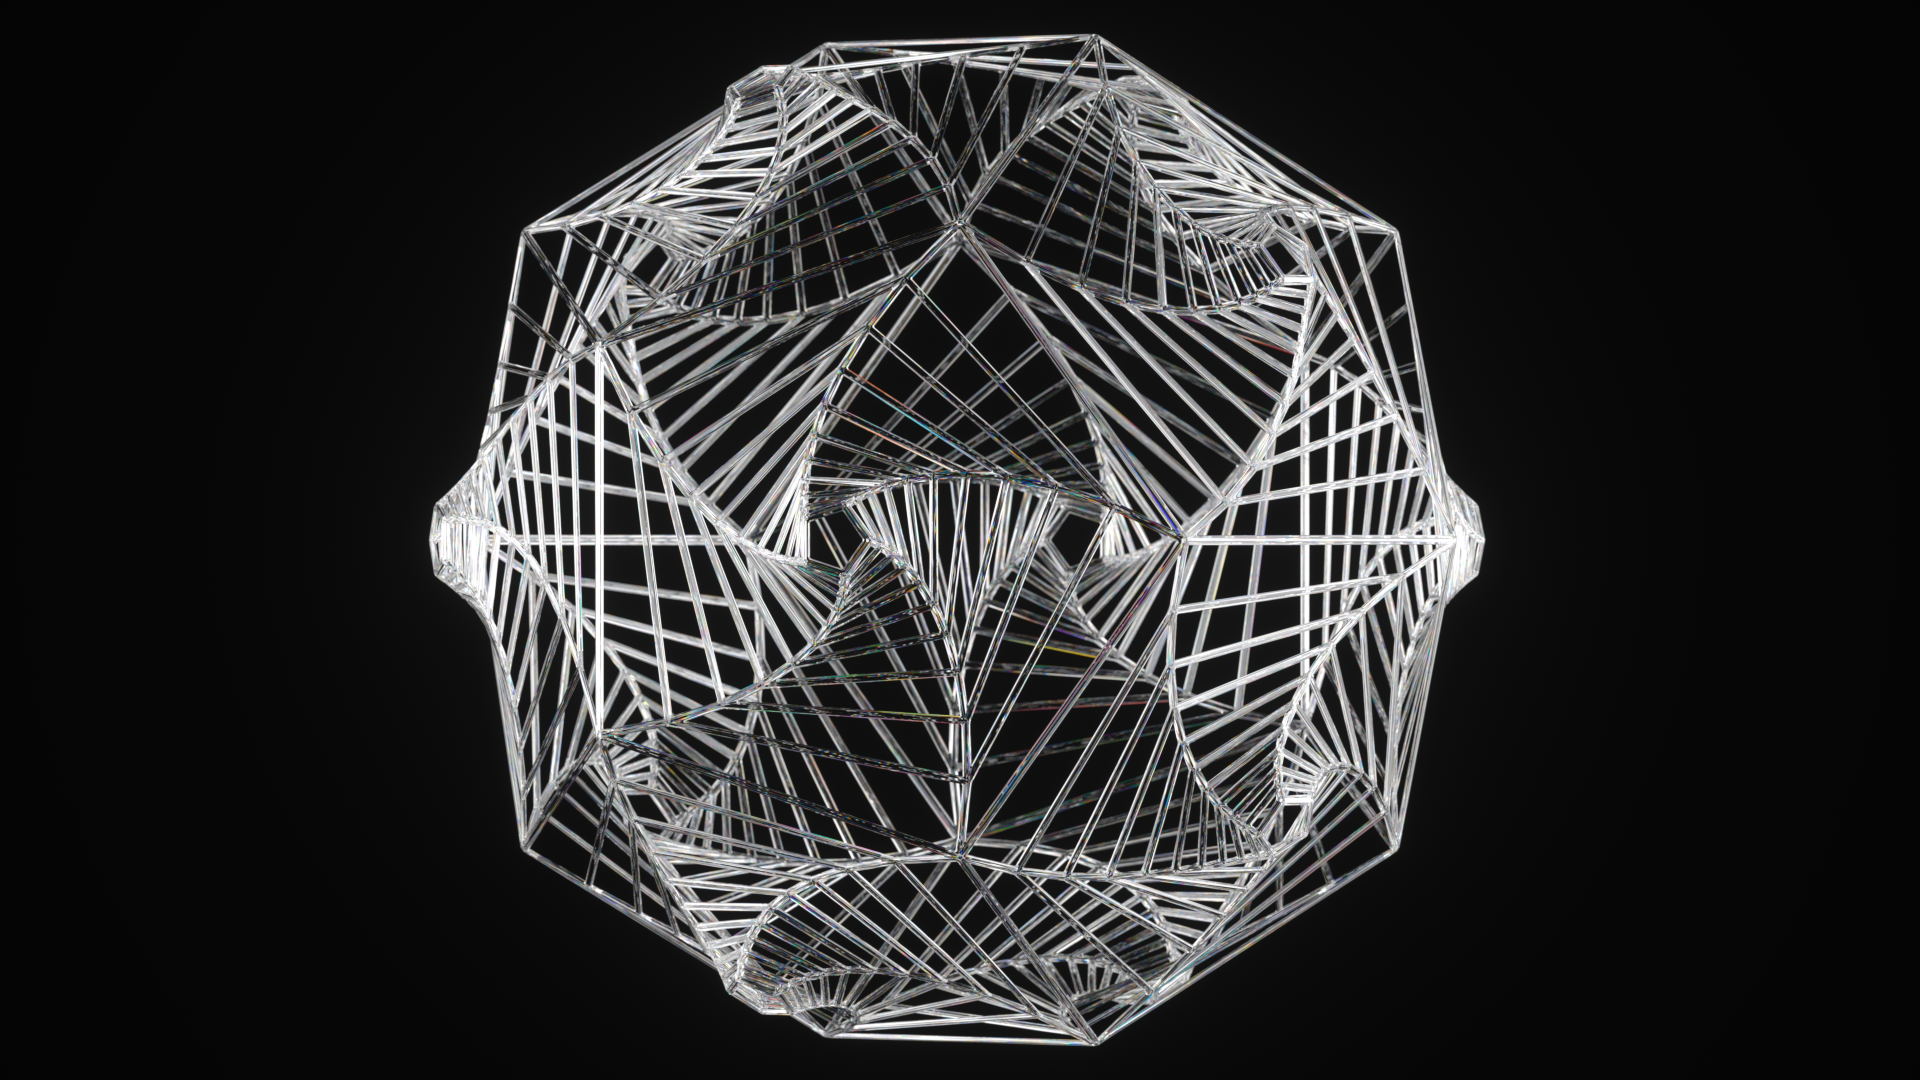 Wireframe Spiral Dodecahedron by usere35